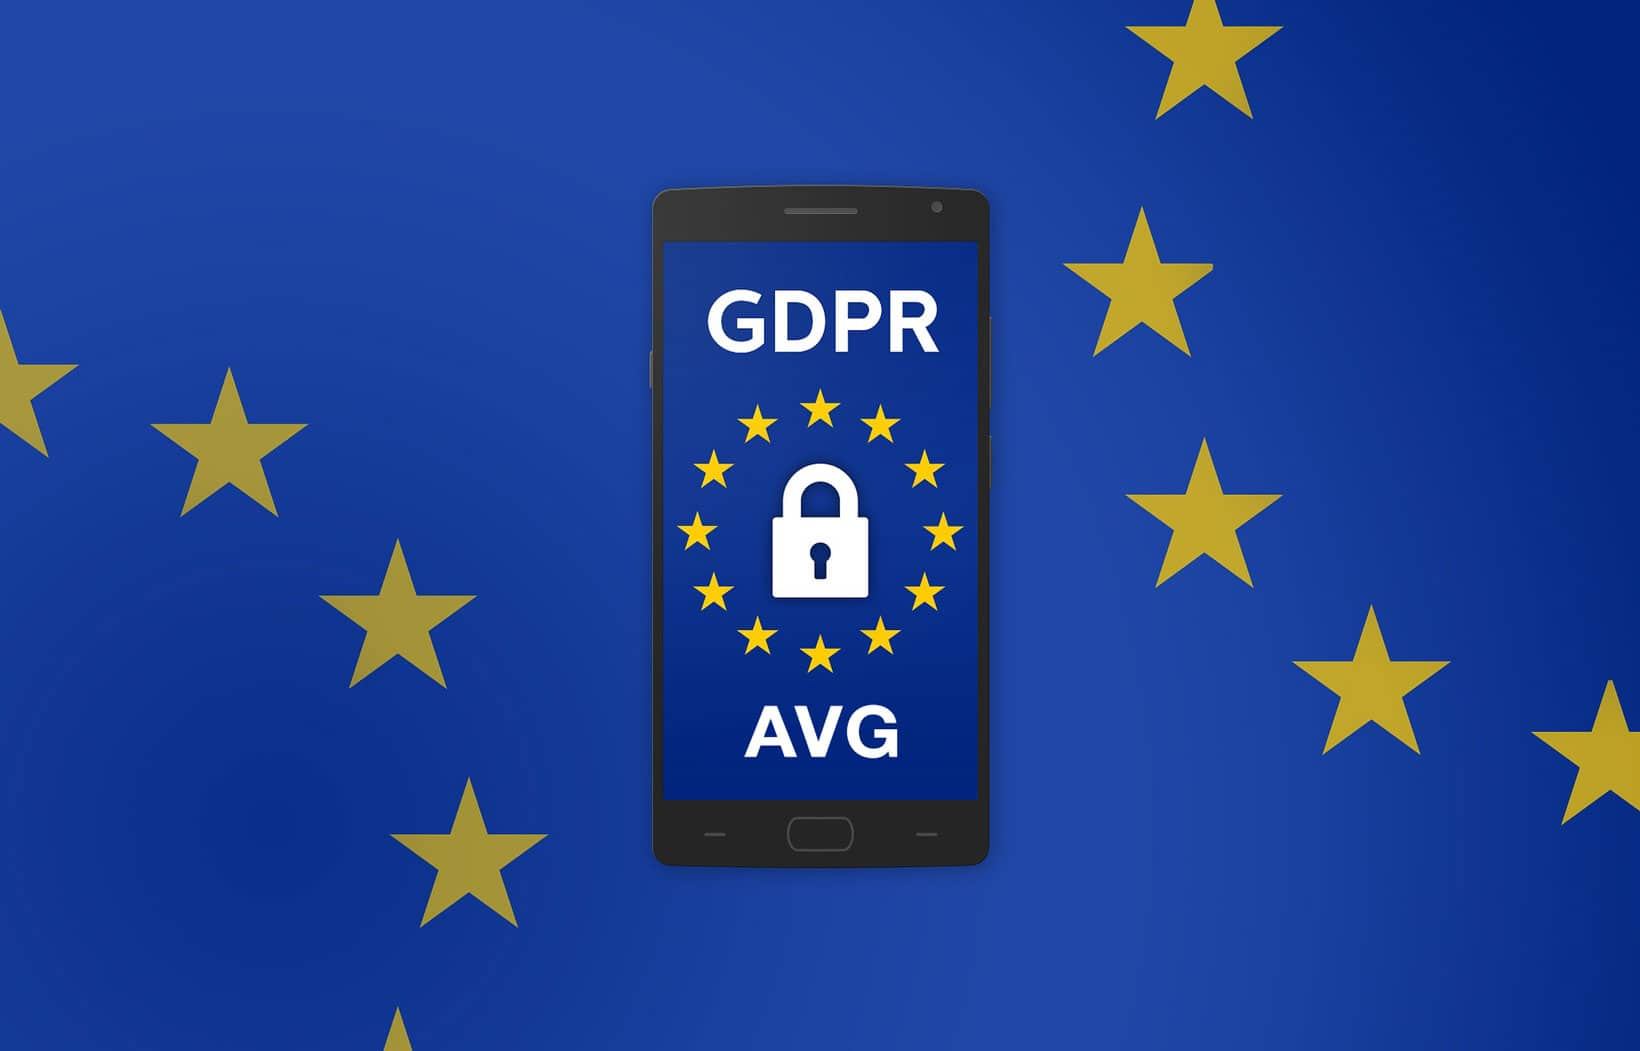 What are the benefits of GDPR?